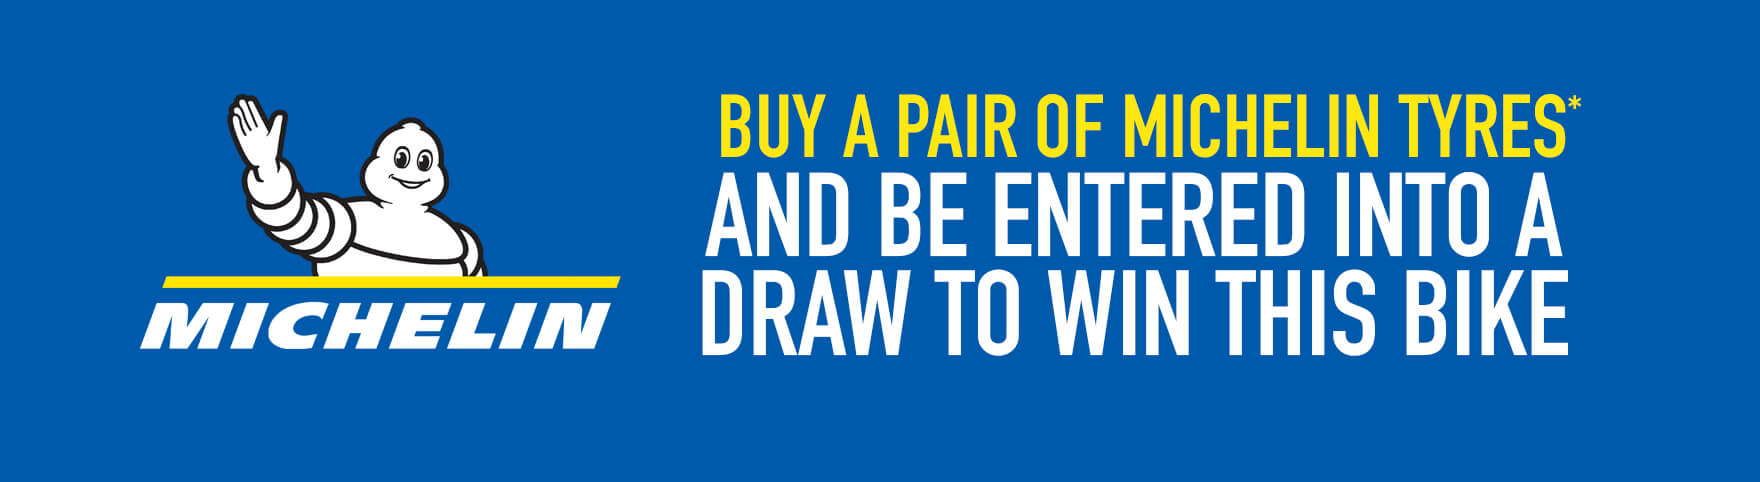 BUY A PAIR OF MICHELIN TYRES AND BE ENTERED INTO A DRAW TO WIN THIS BIKE